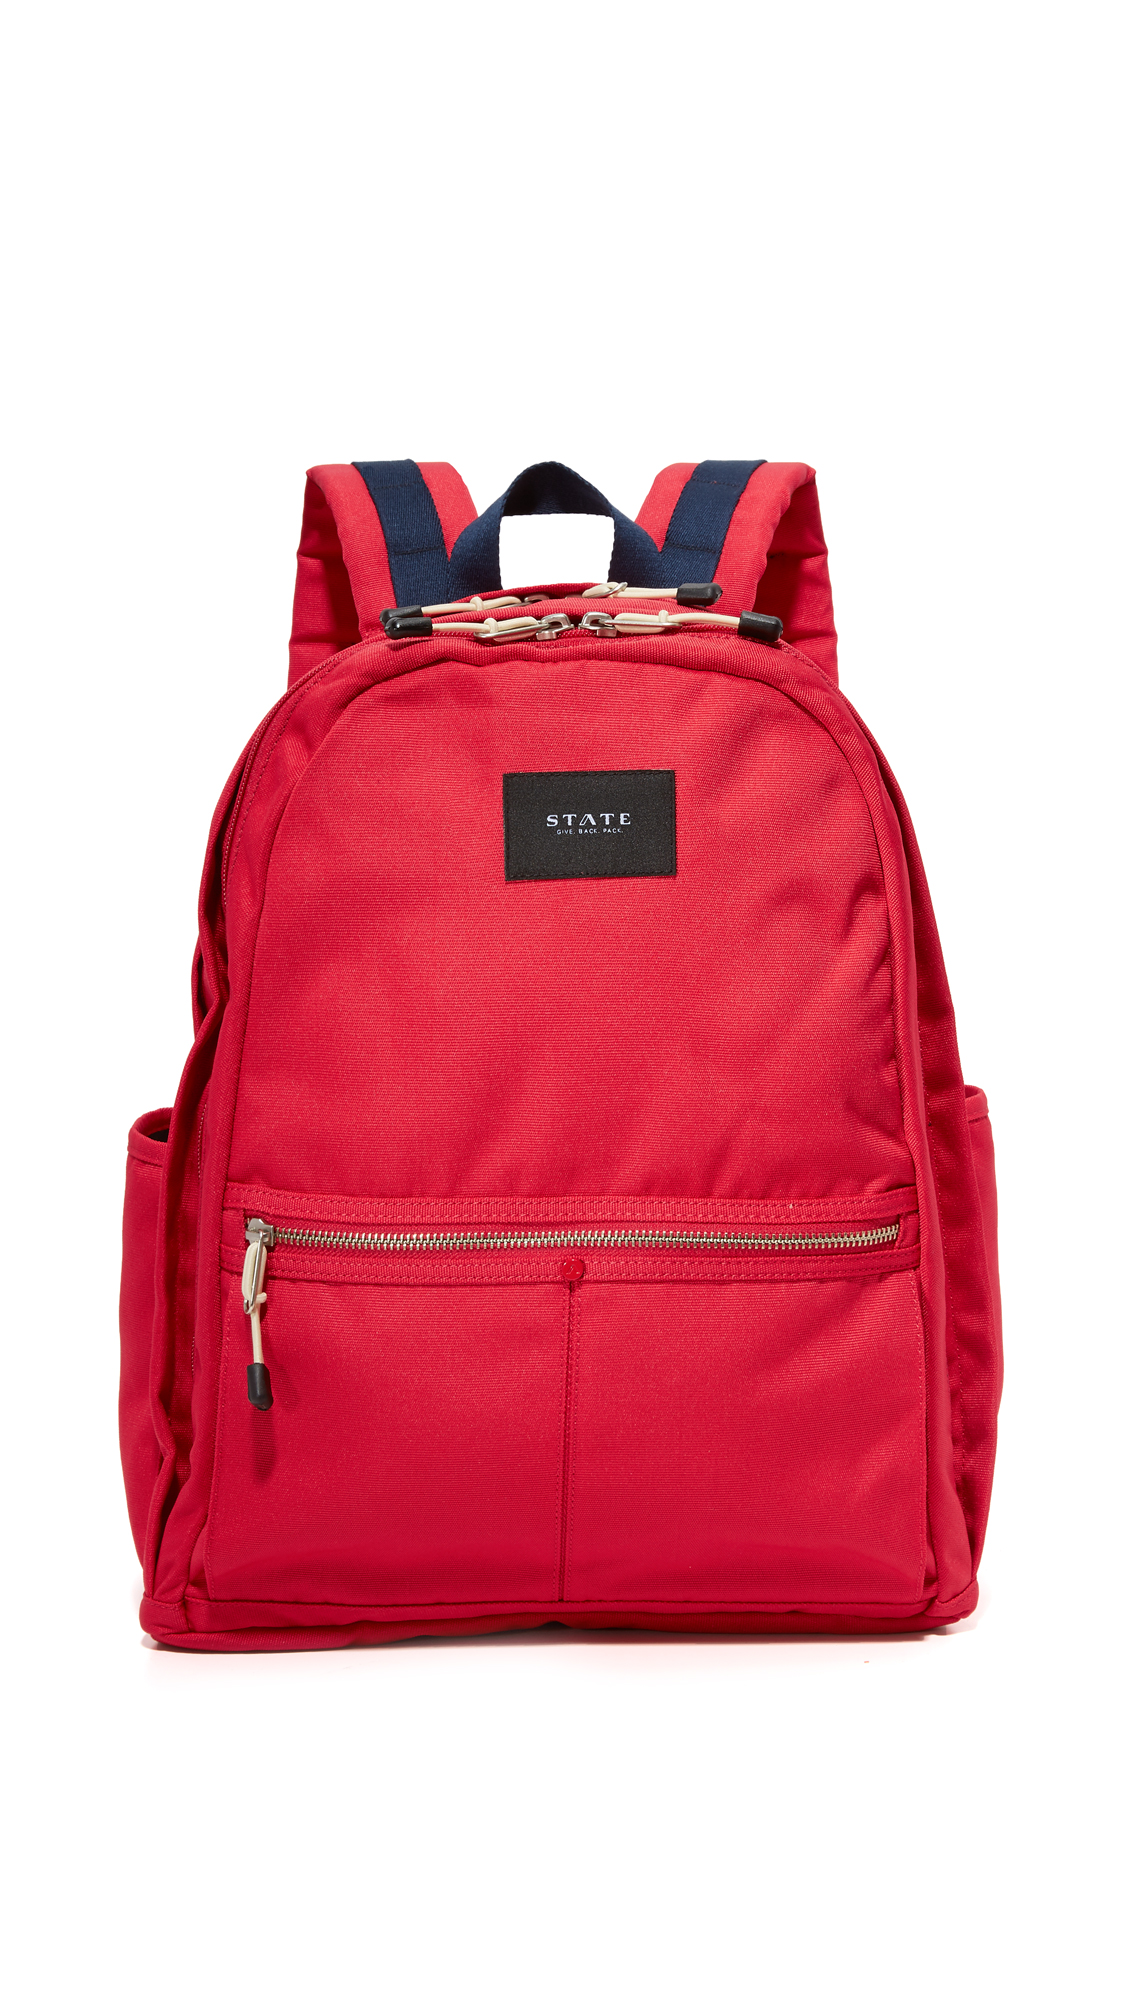 state female state bedford backpack red